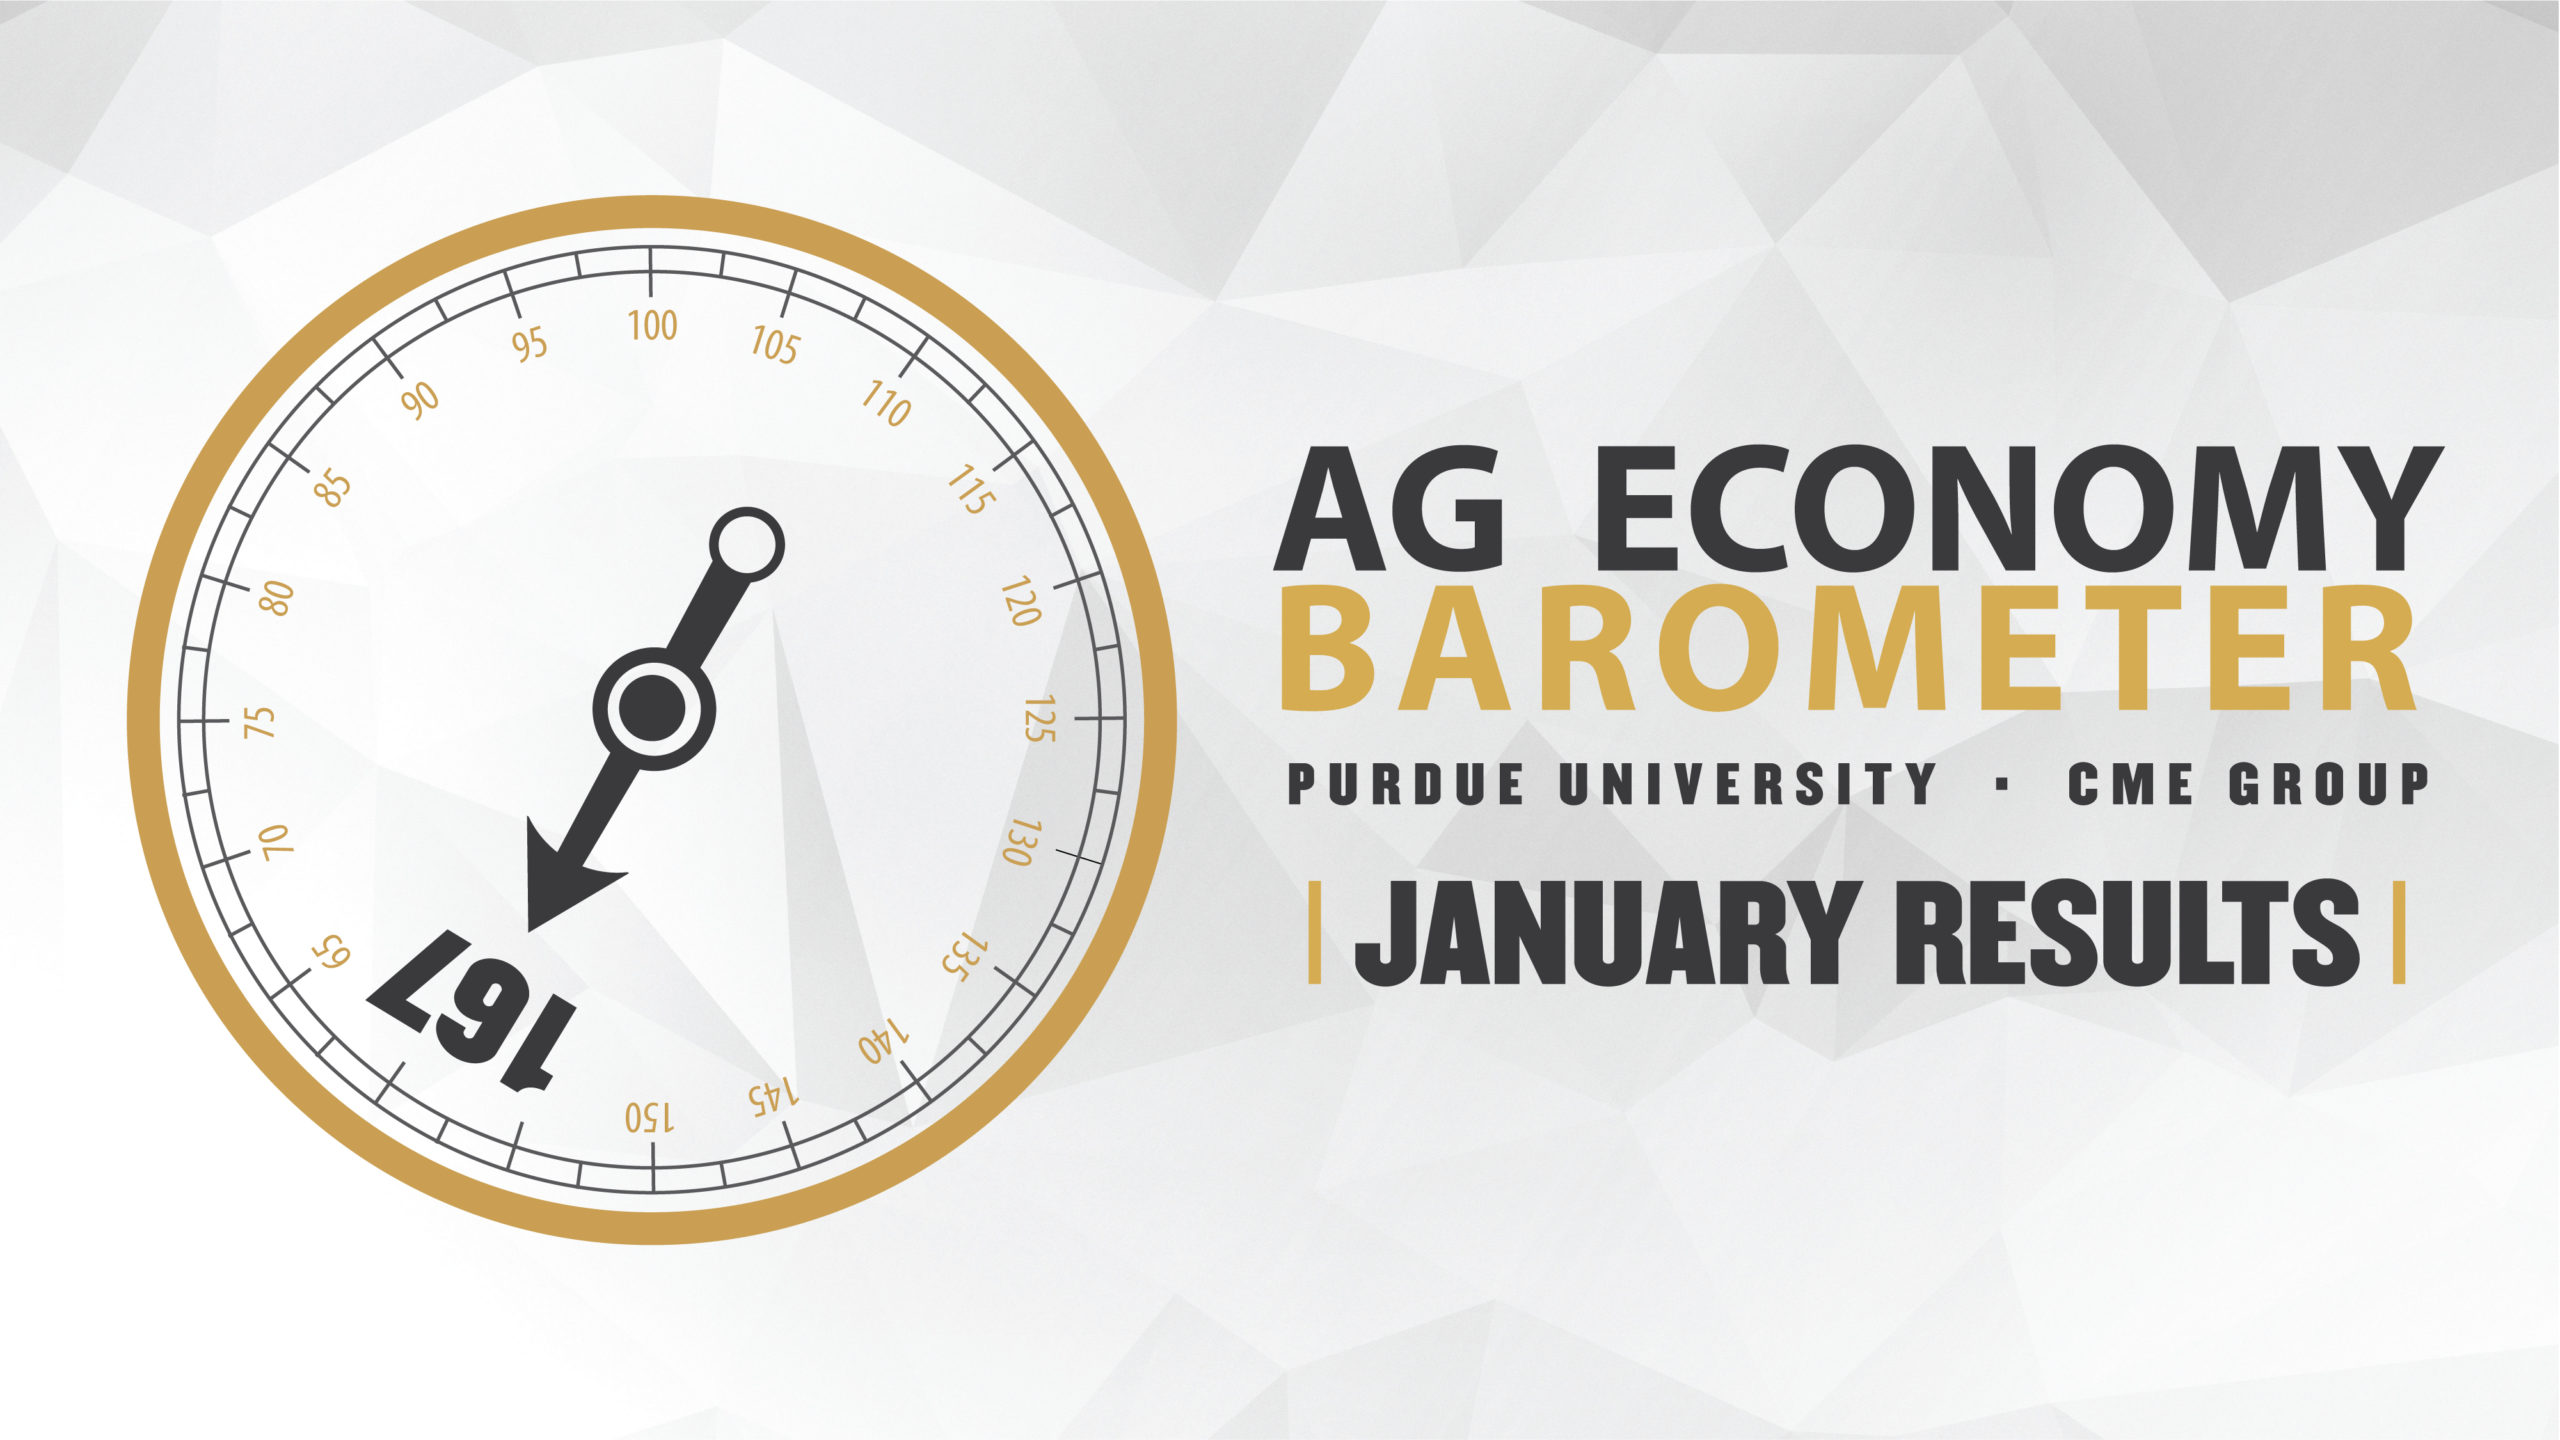 Ag Economy Barometer Widget January 2020: 167